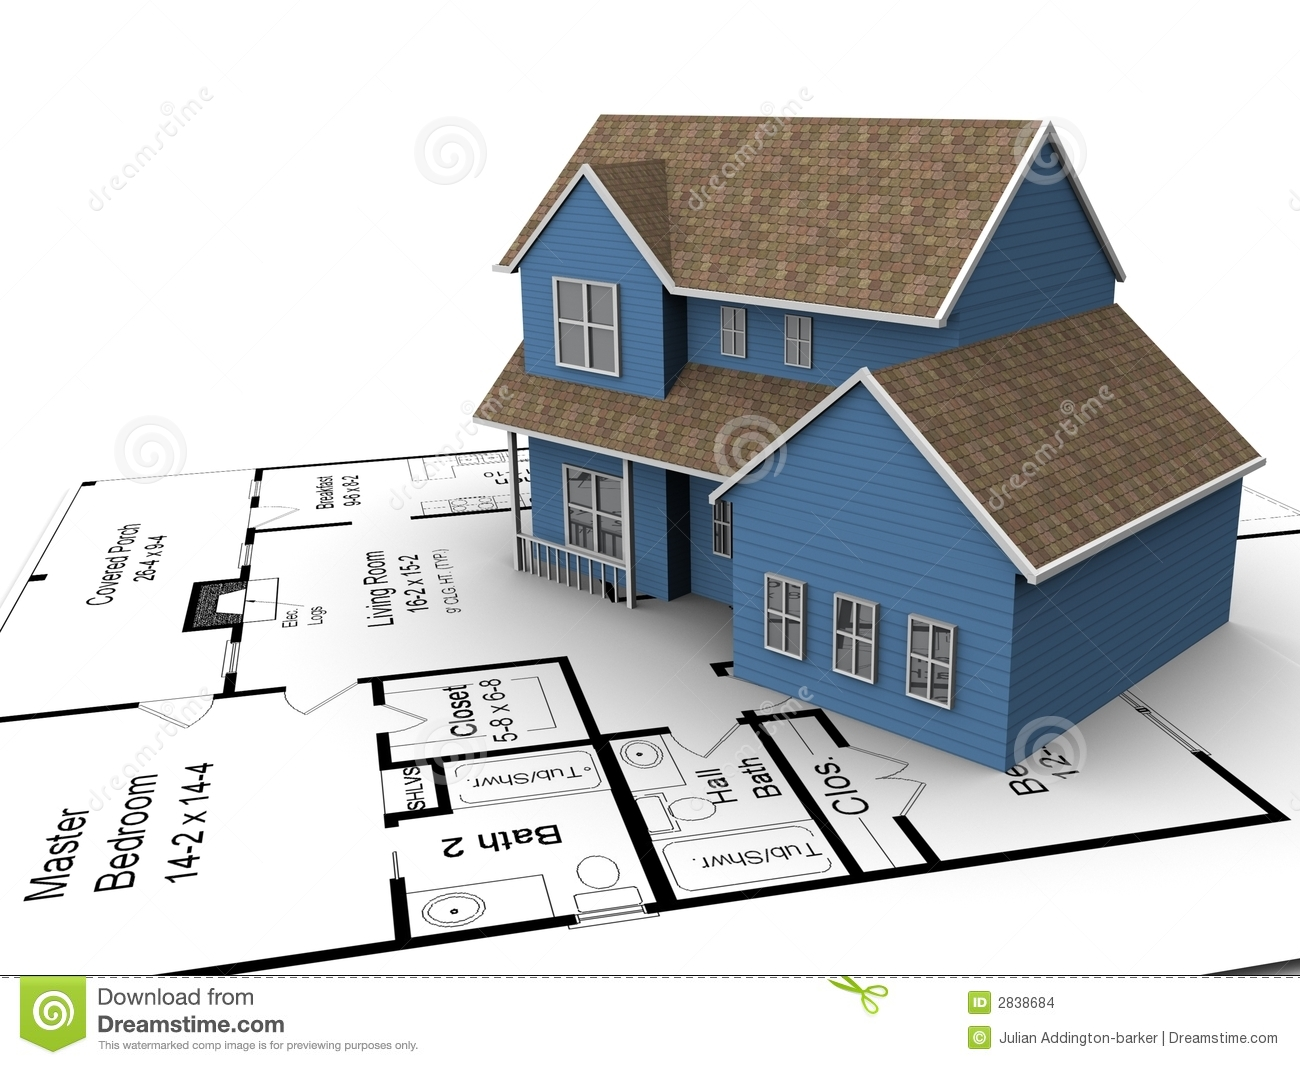 New house plans stock illustration image of design for New building plans